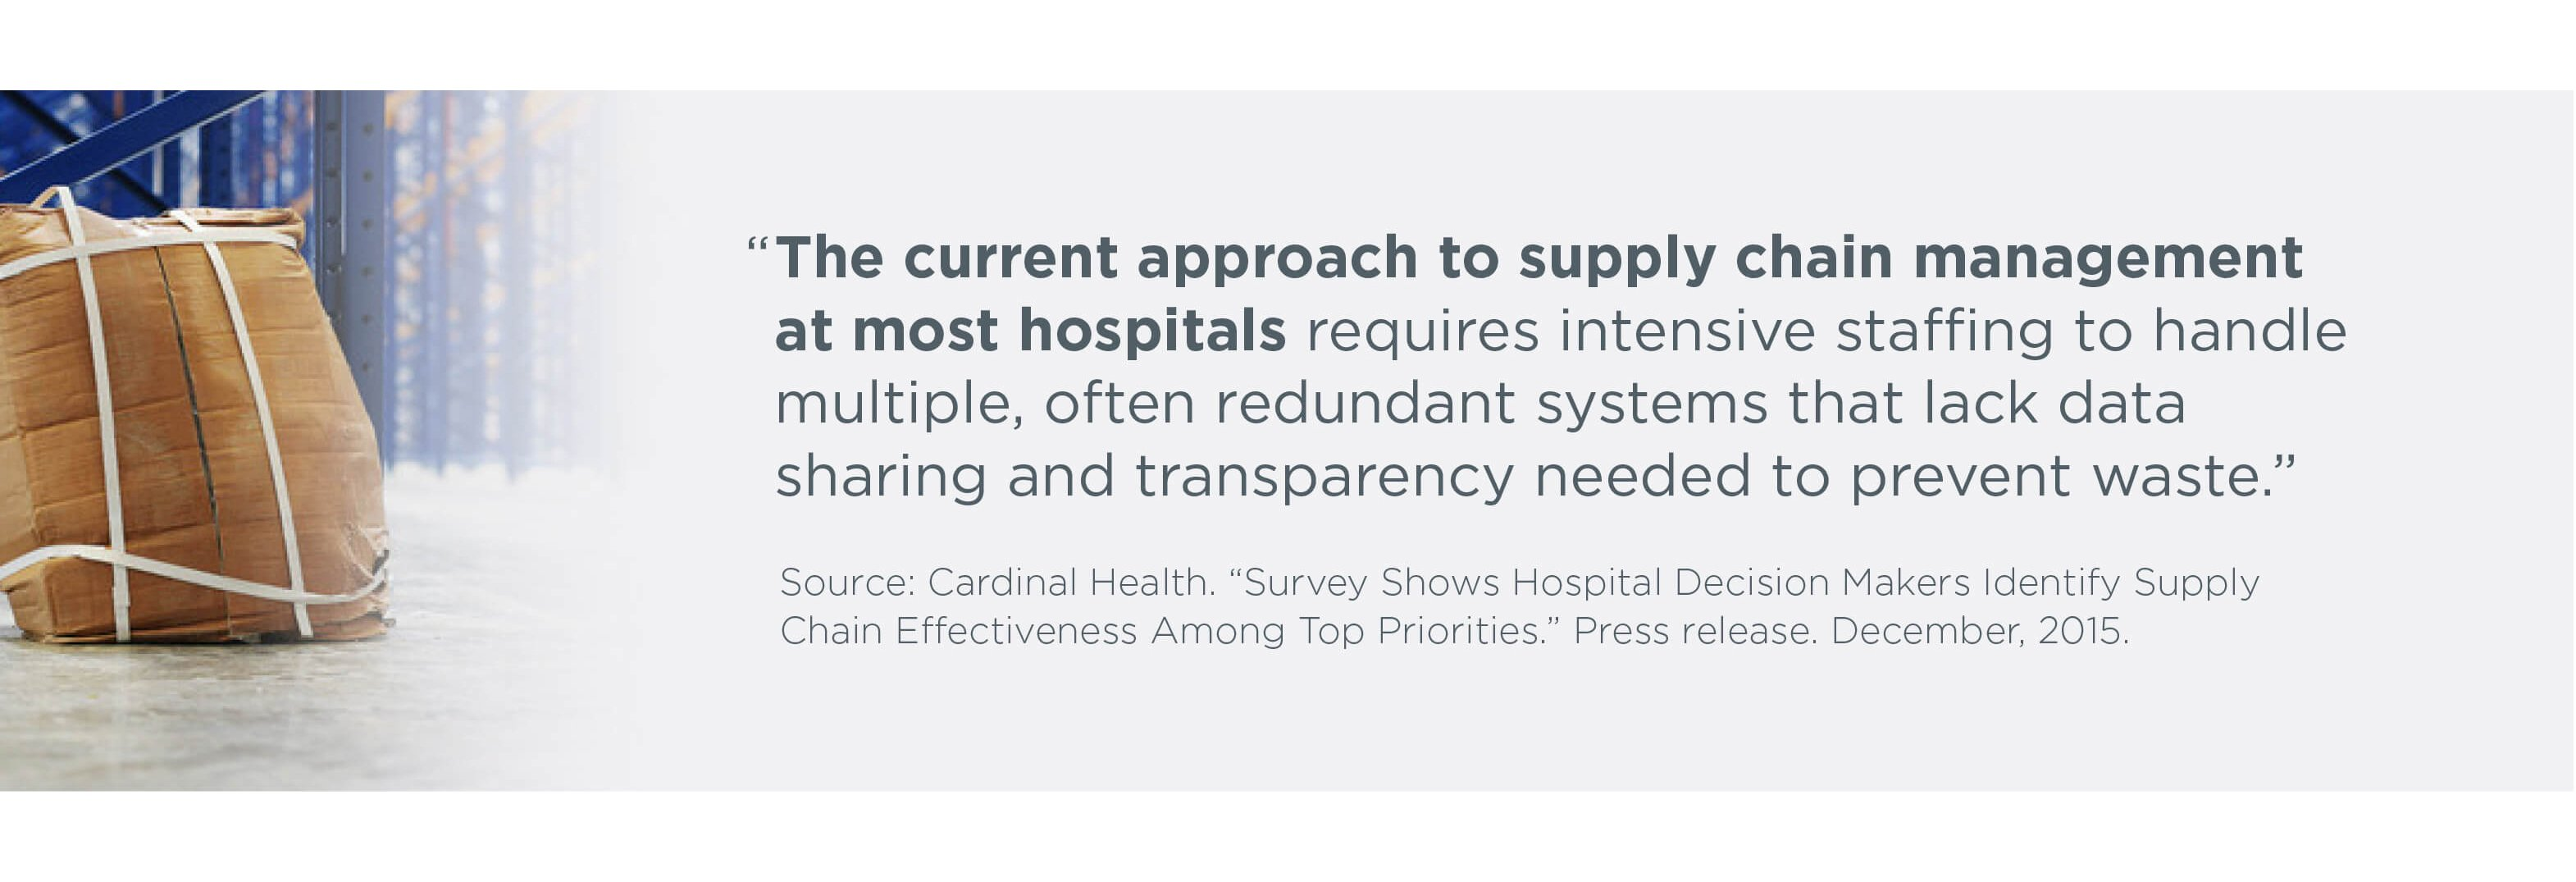 Cardinal Health Supply Chain quote 2